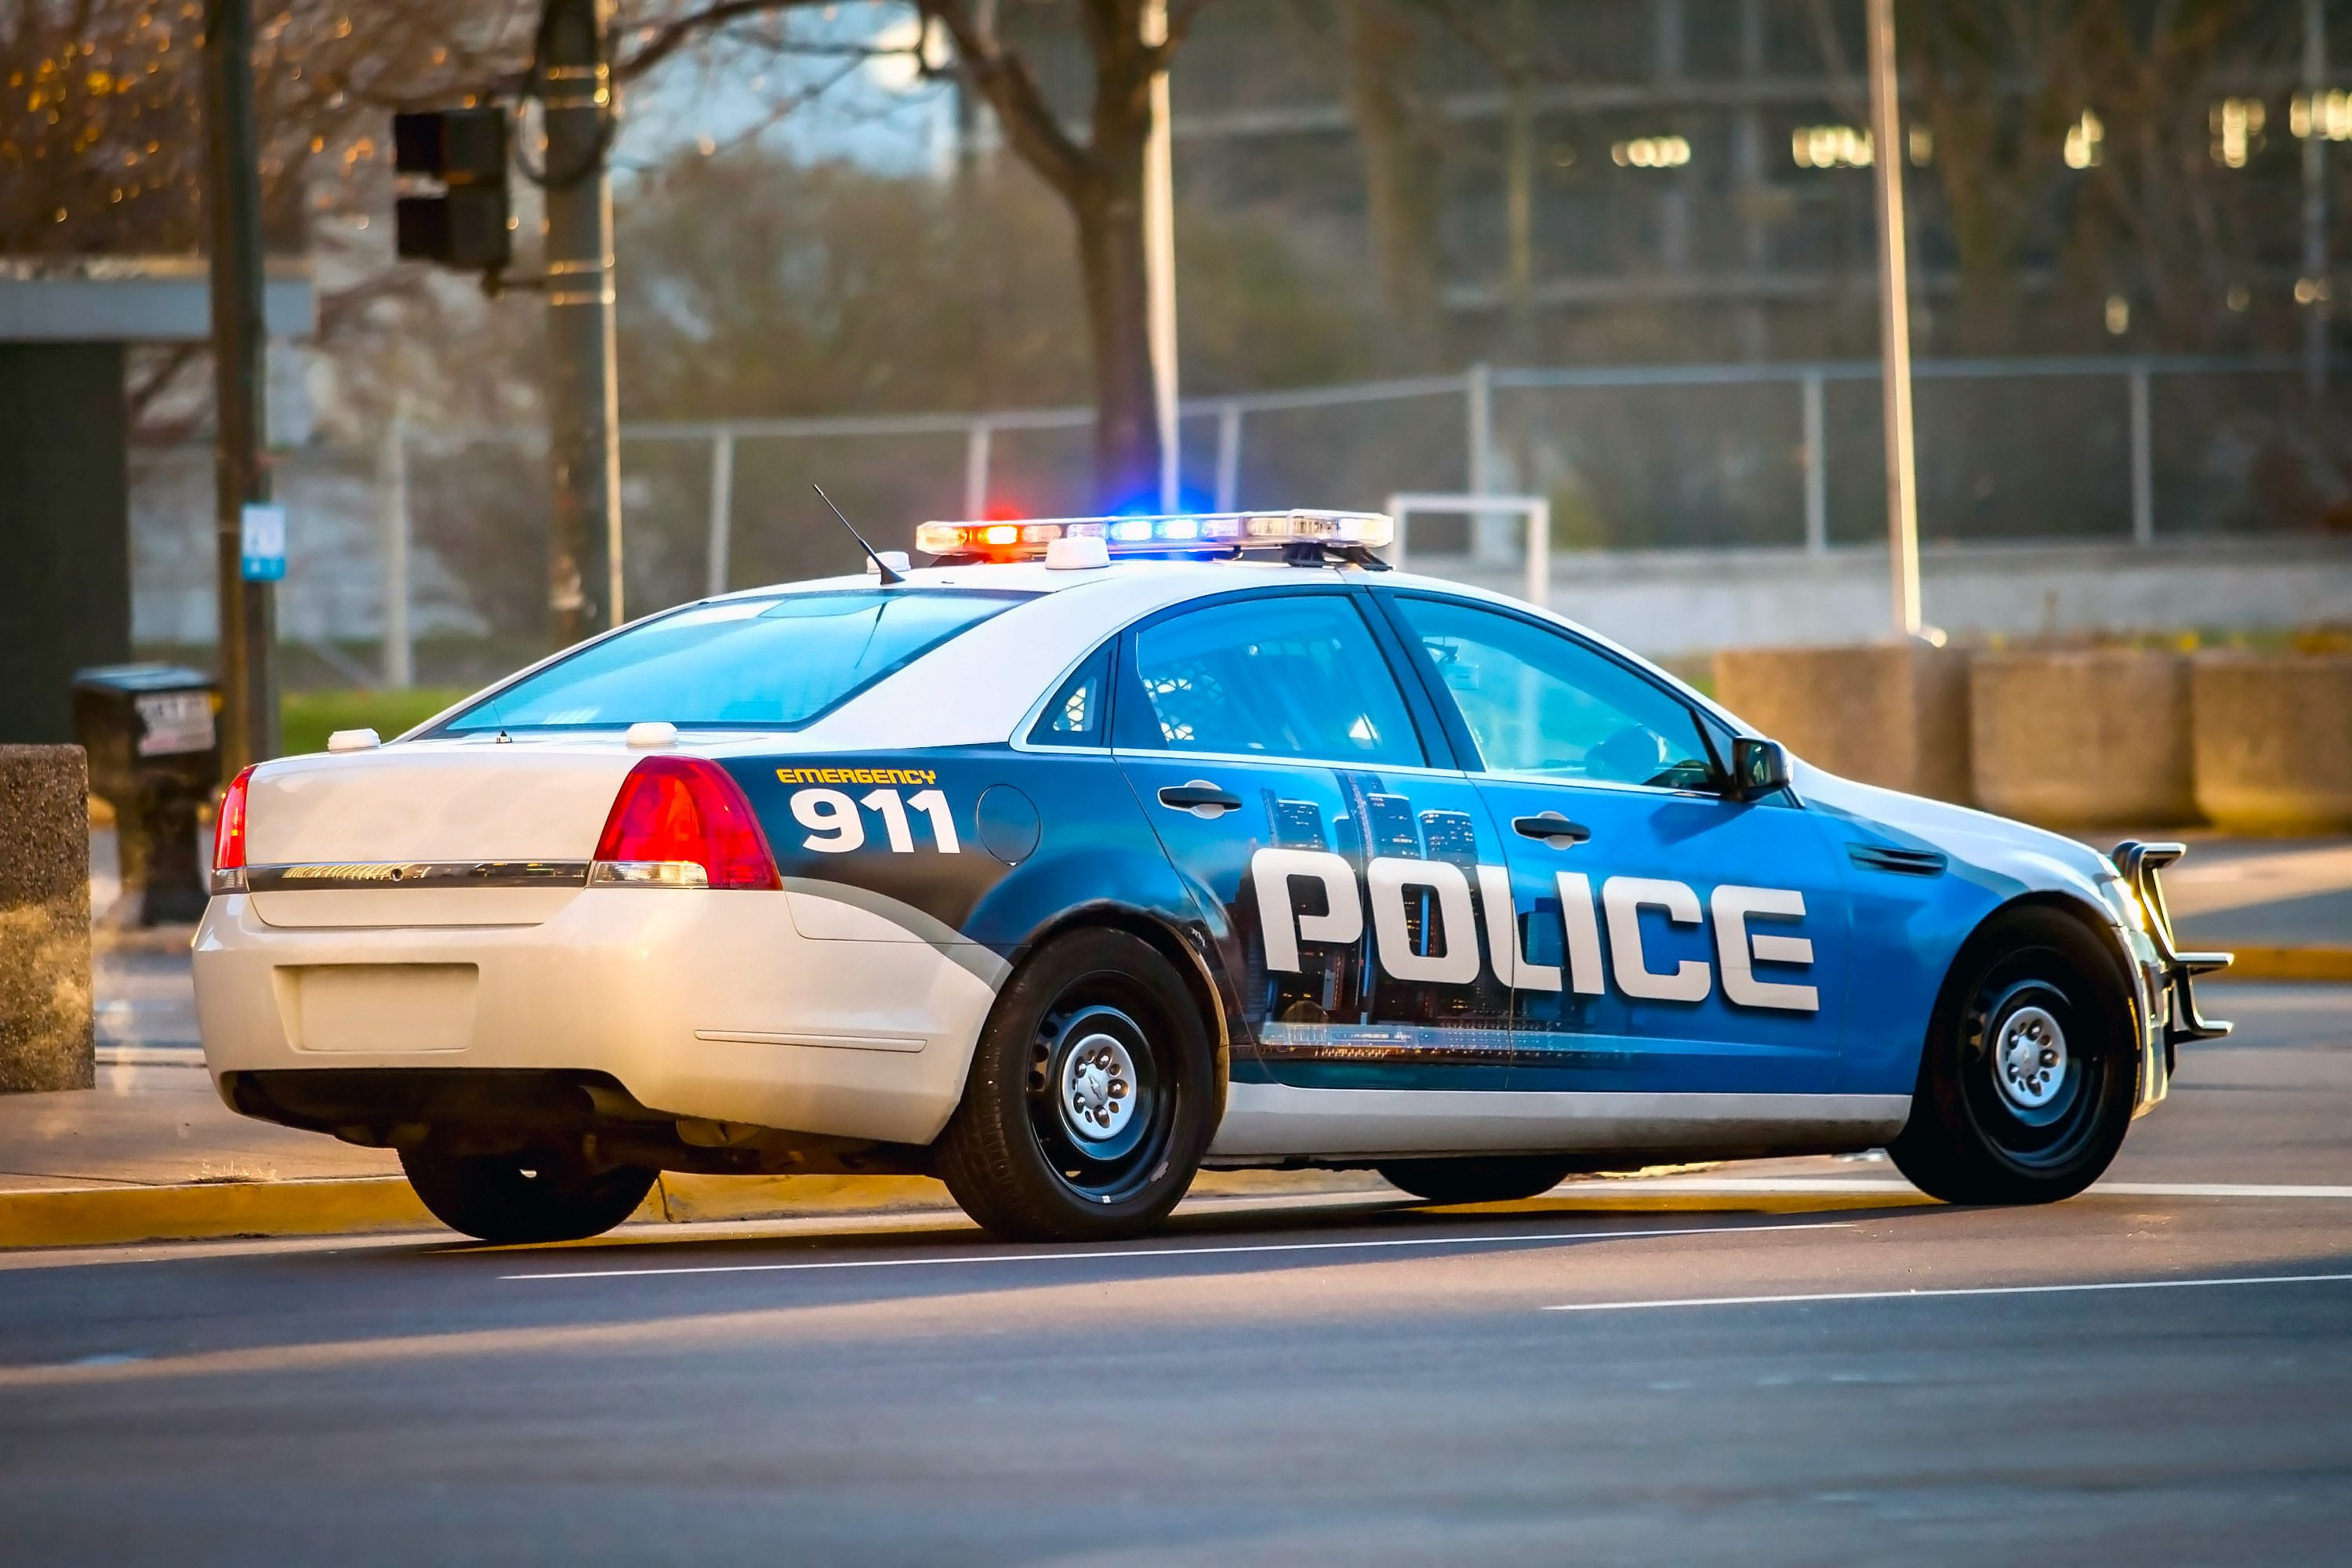 A police vehicle driving down a street.   Photo: Shutterstock